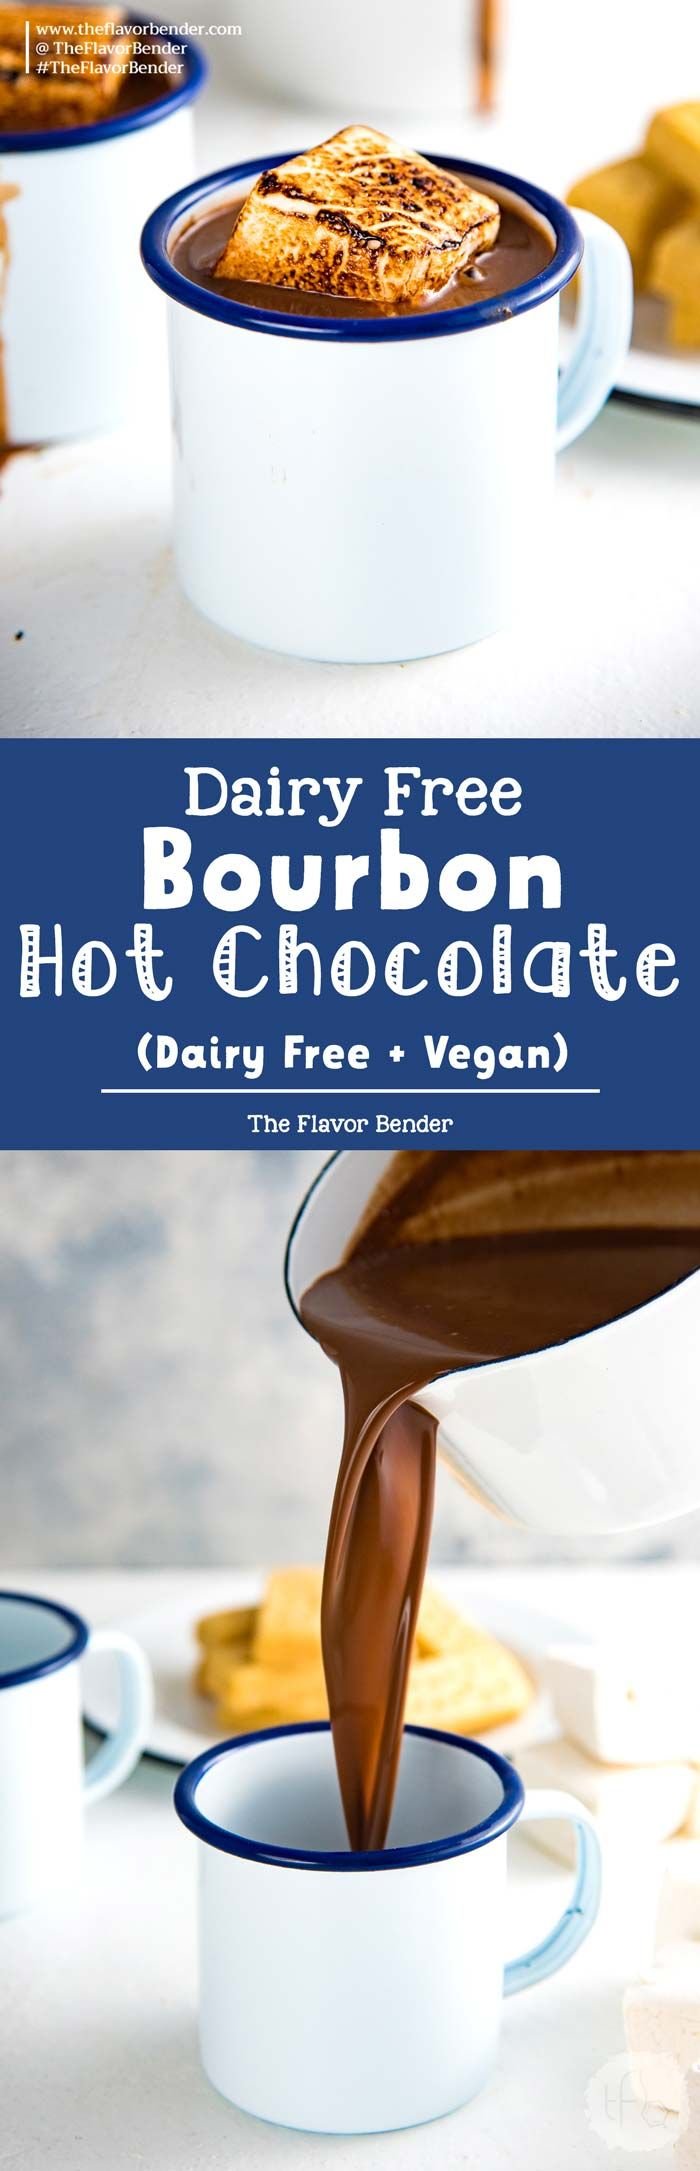 Dairy Free Bourbon Hot Chocolate - a luscious, rich decadent dairy free french hot chocolate with a splash of bourbon to warm you up from the inside! Vegan and dairy free.  via @theflavorbender